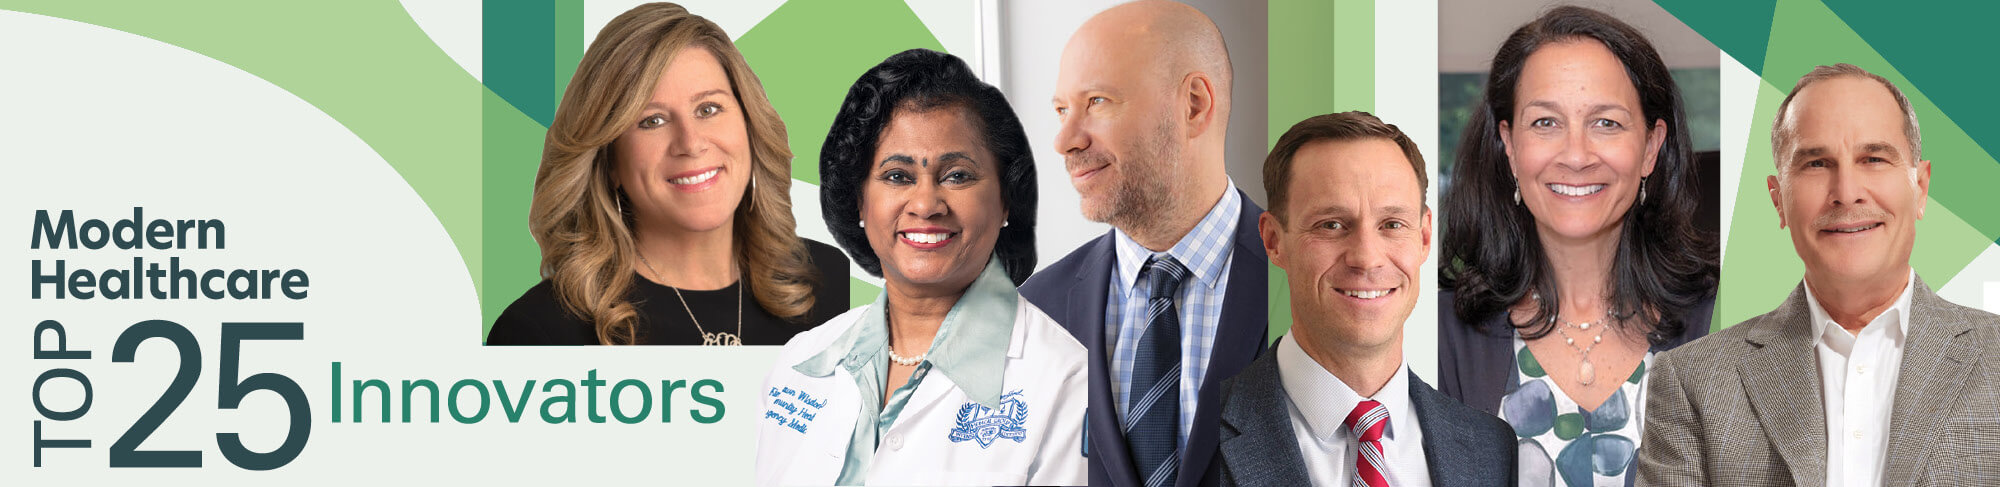 Modern Healthcare's inaugural class of Top 25 Innovators